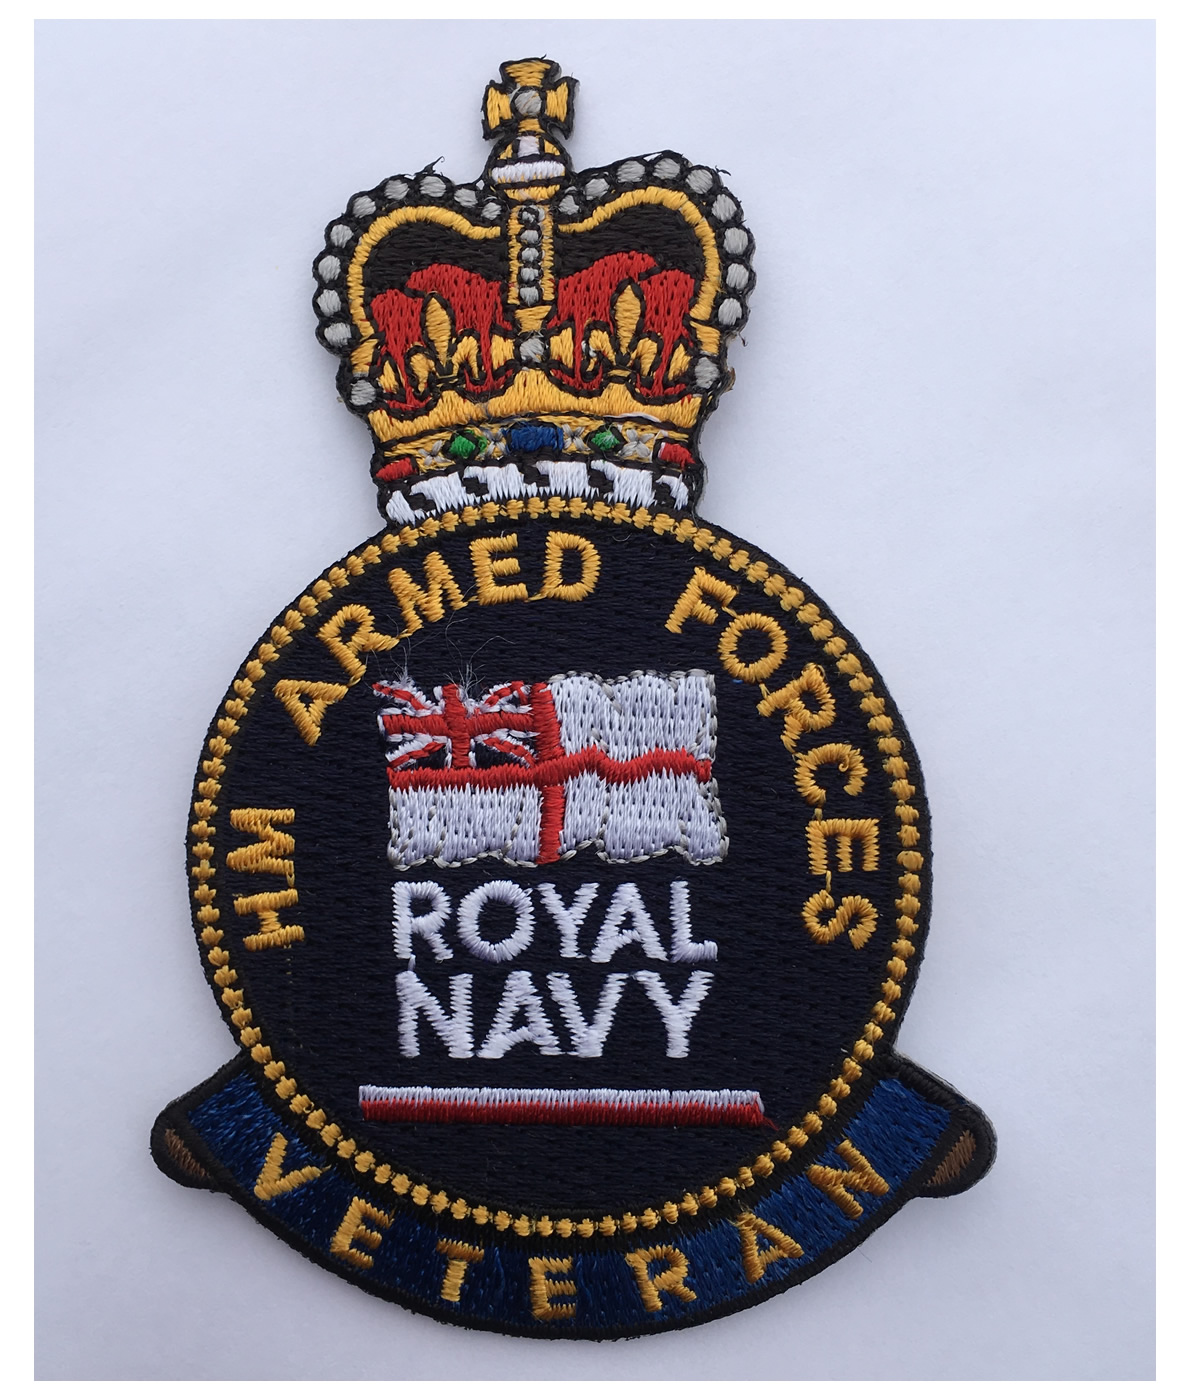 Royal Navy Veteran Patch